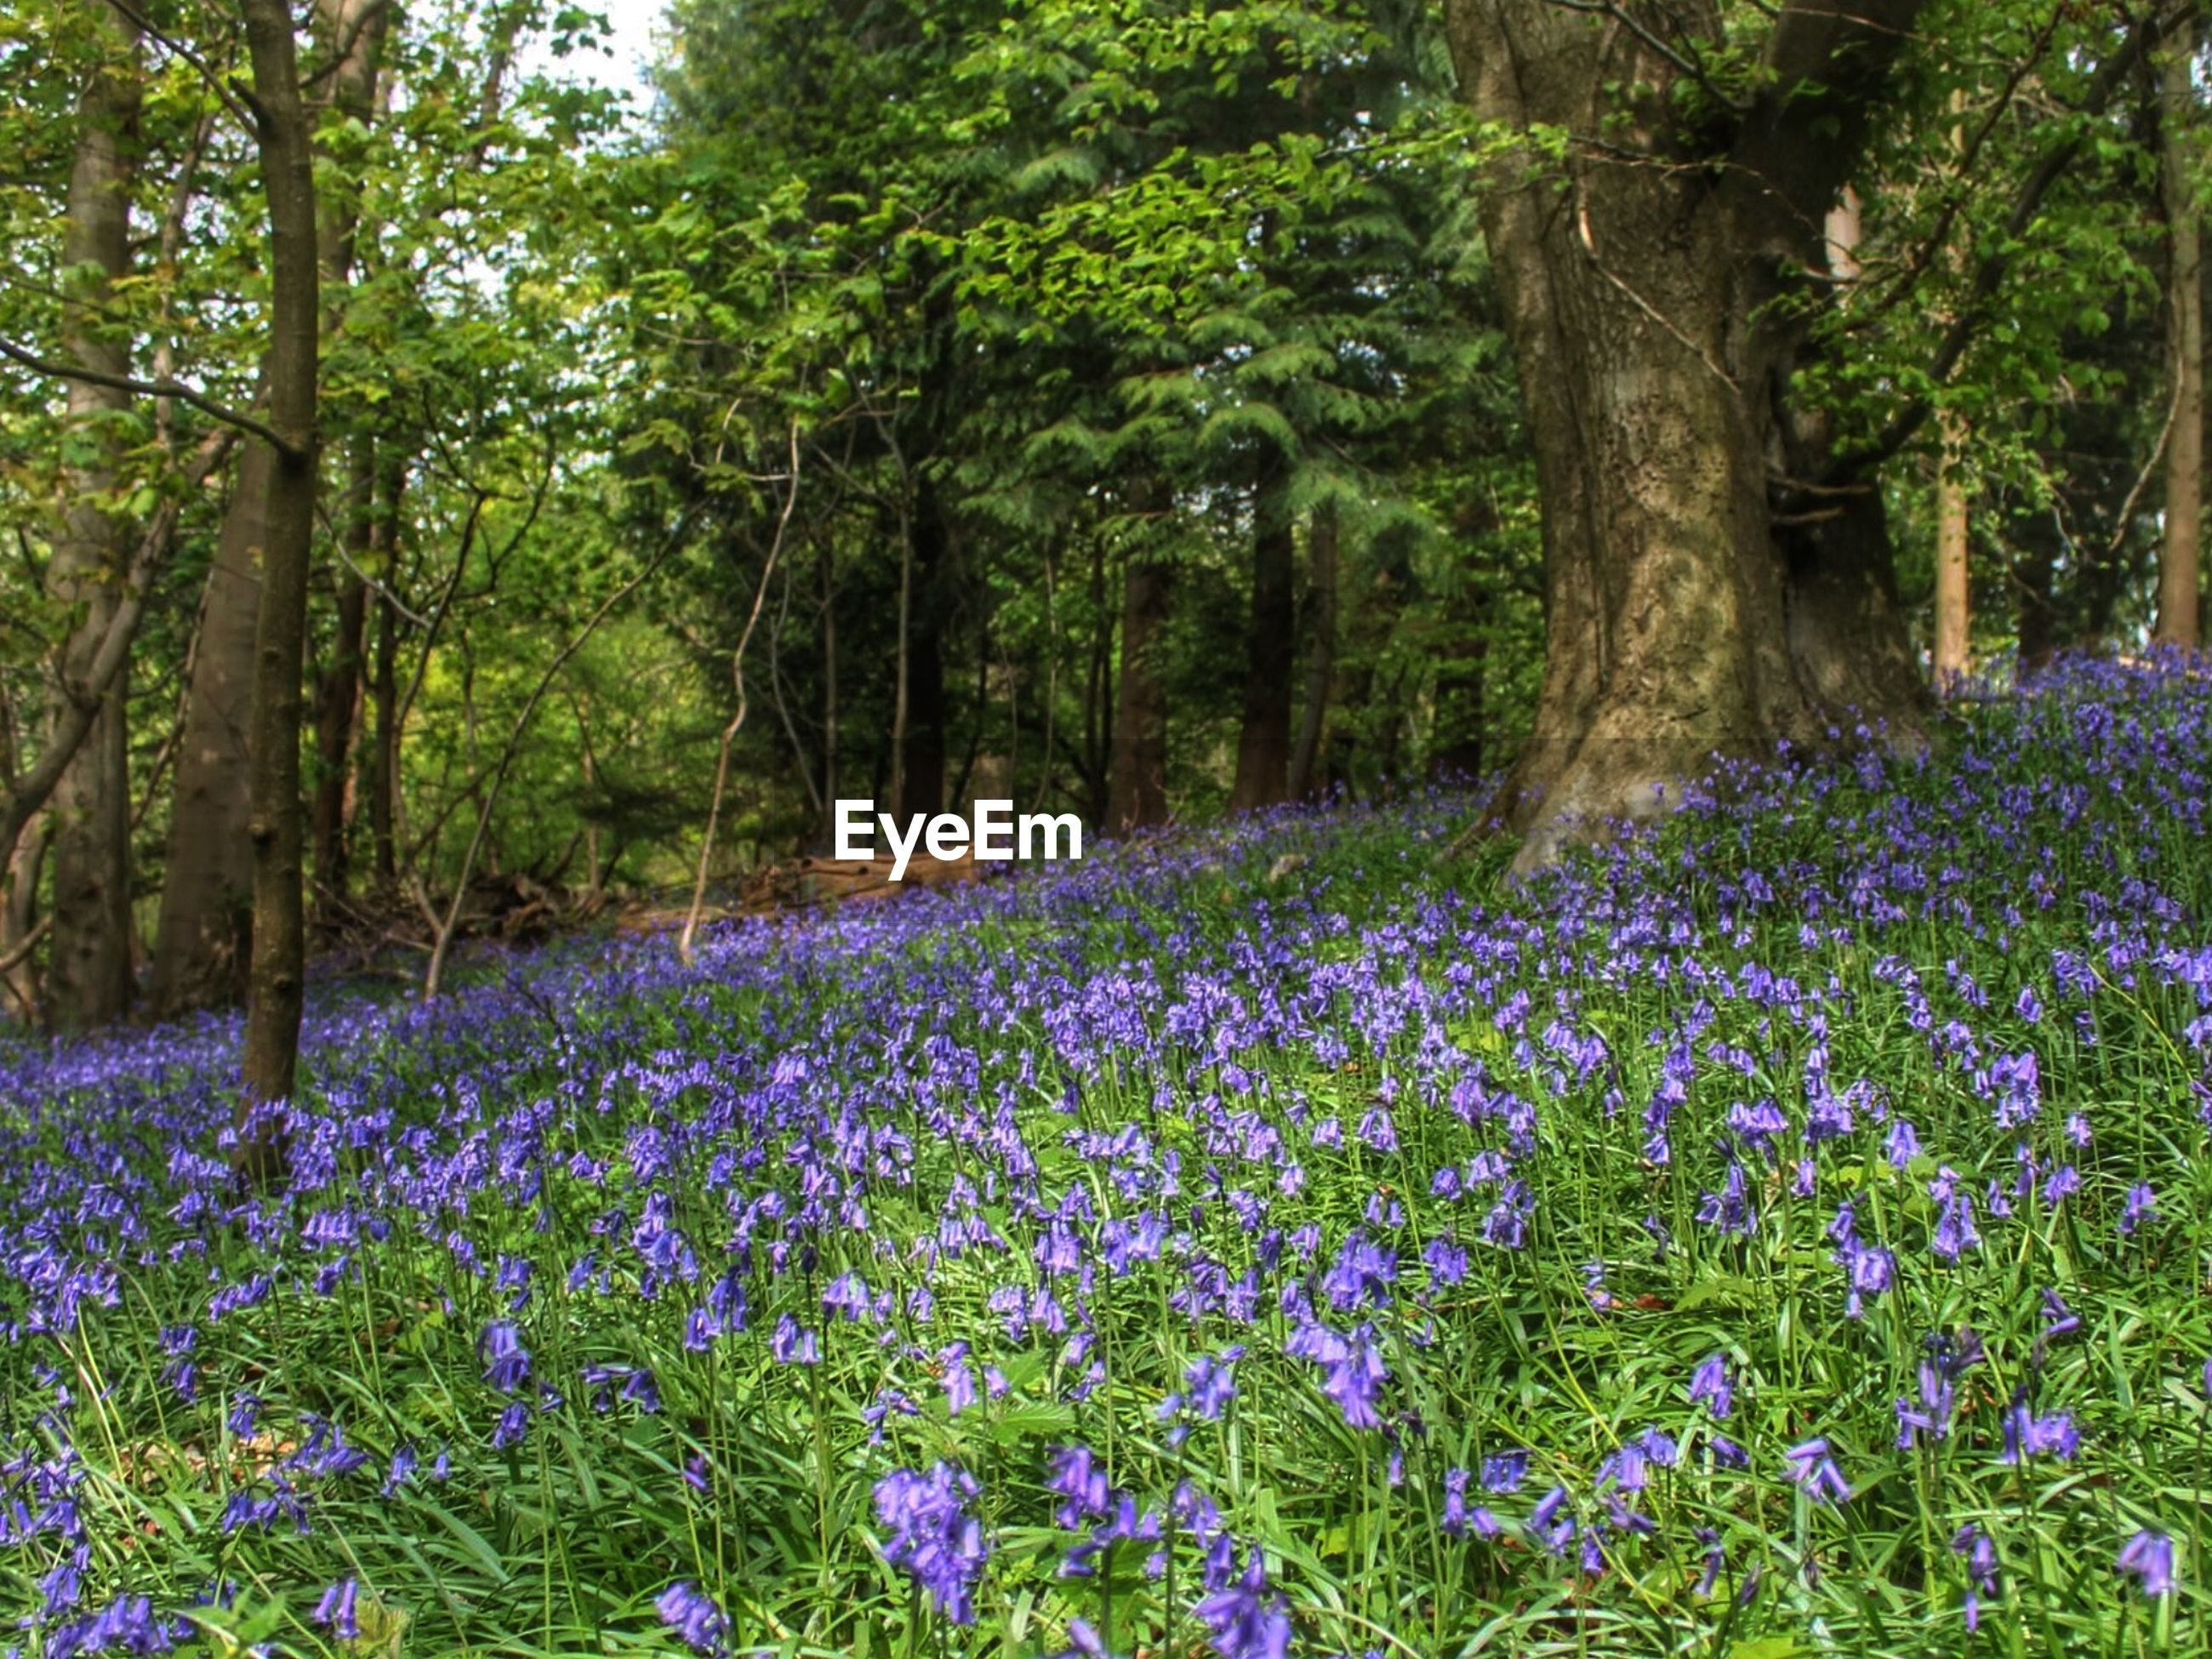 flower, growth, beauty in nature, purple, freshness, tree, nature, fragility, tranquility, plant, blooming, tranquil scene, scenics, park - man made space, abundance, petal, in bloom, field, day, forest